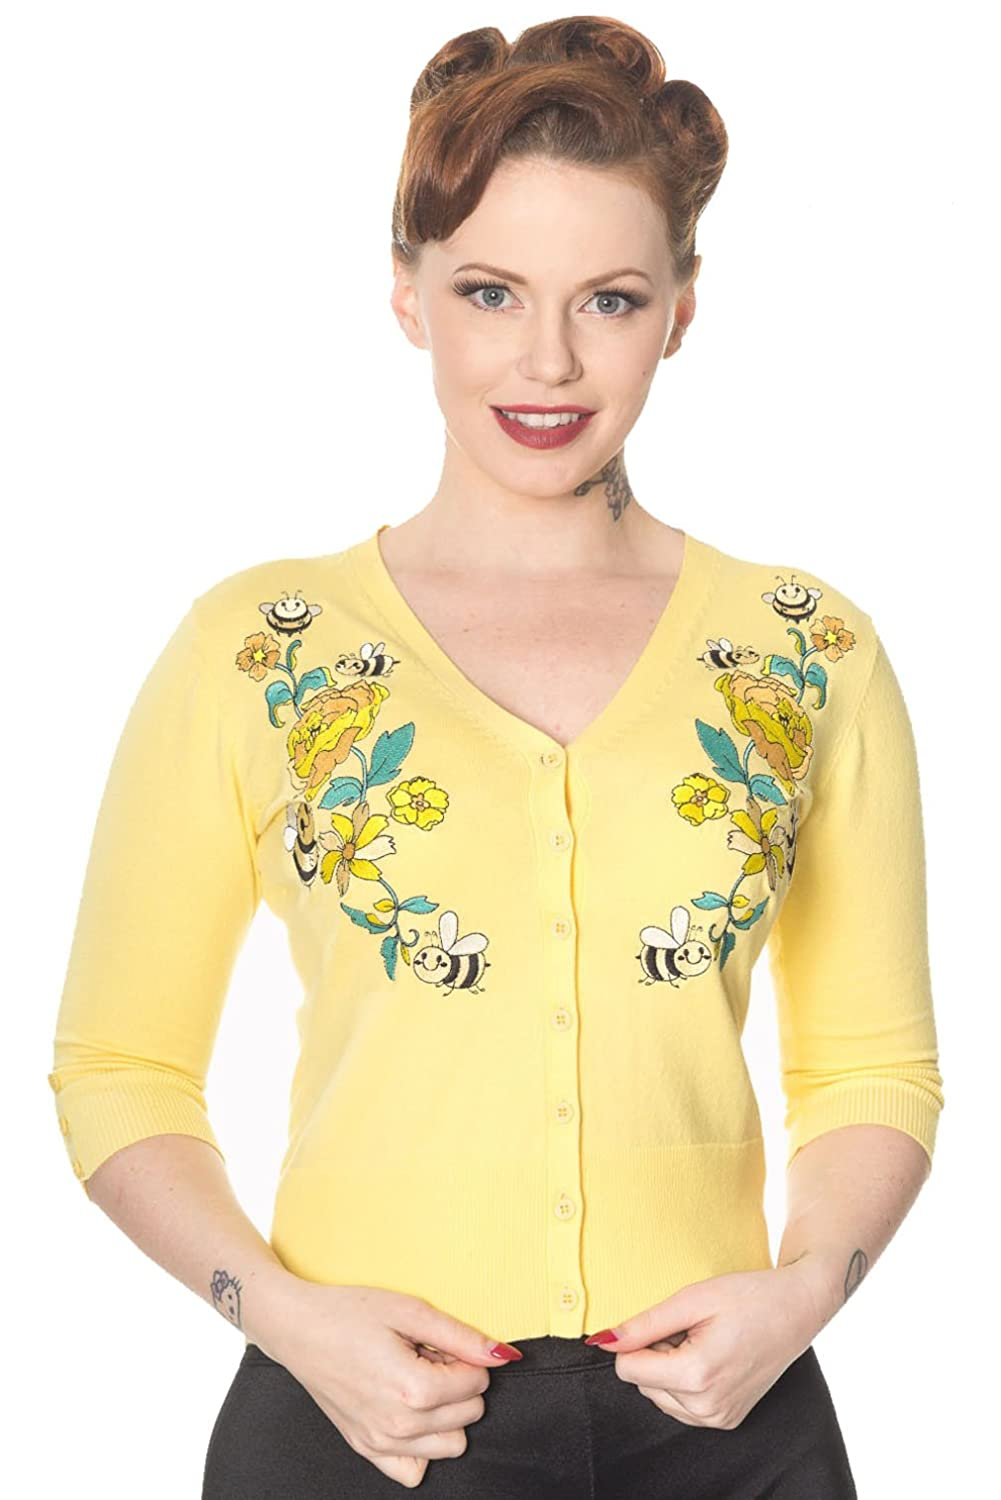 1950s Sweaters, 50s Cardigans, 50s Jumpers Banned - BUMBLE BEE FLOWER - Embroidered Cardigan $39.22 AT vintagedancer.com